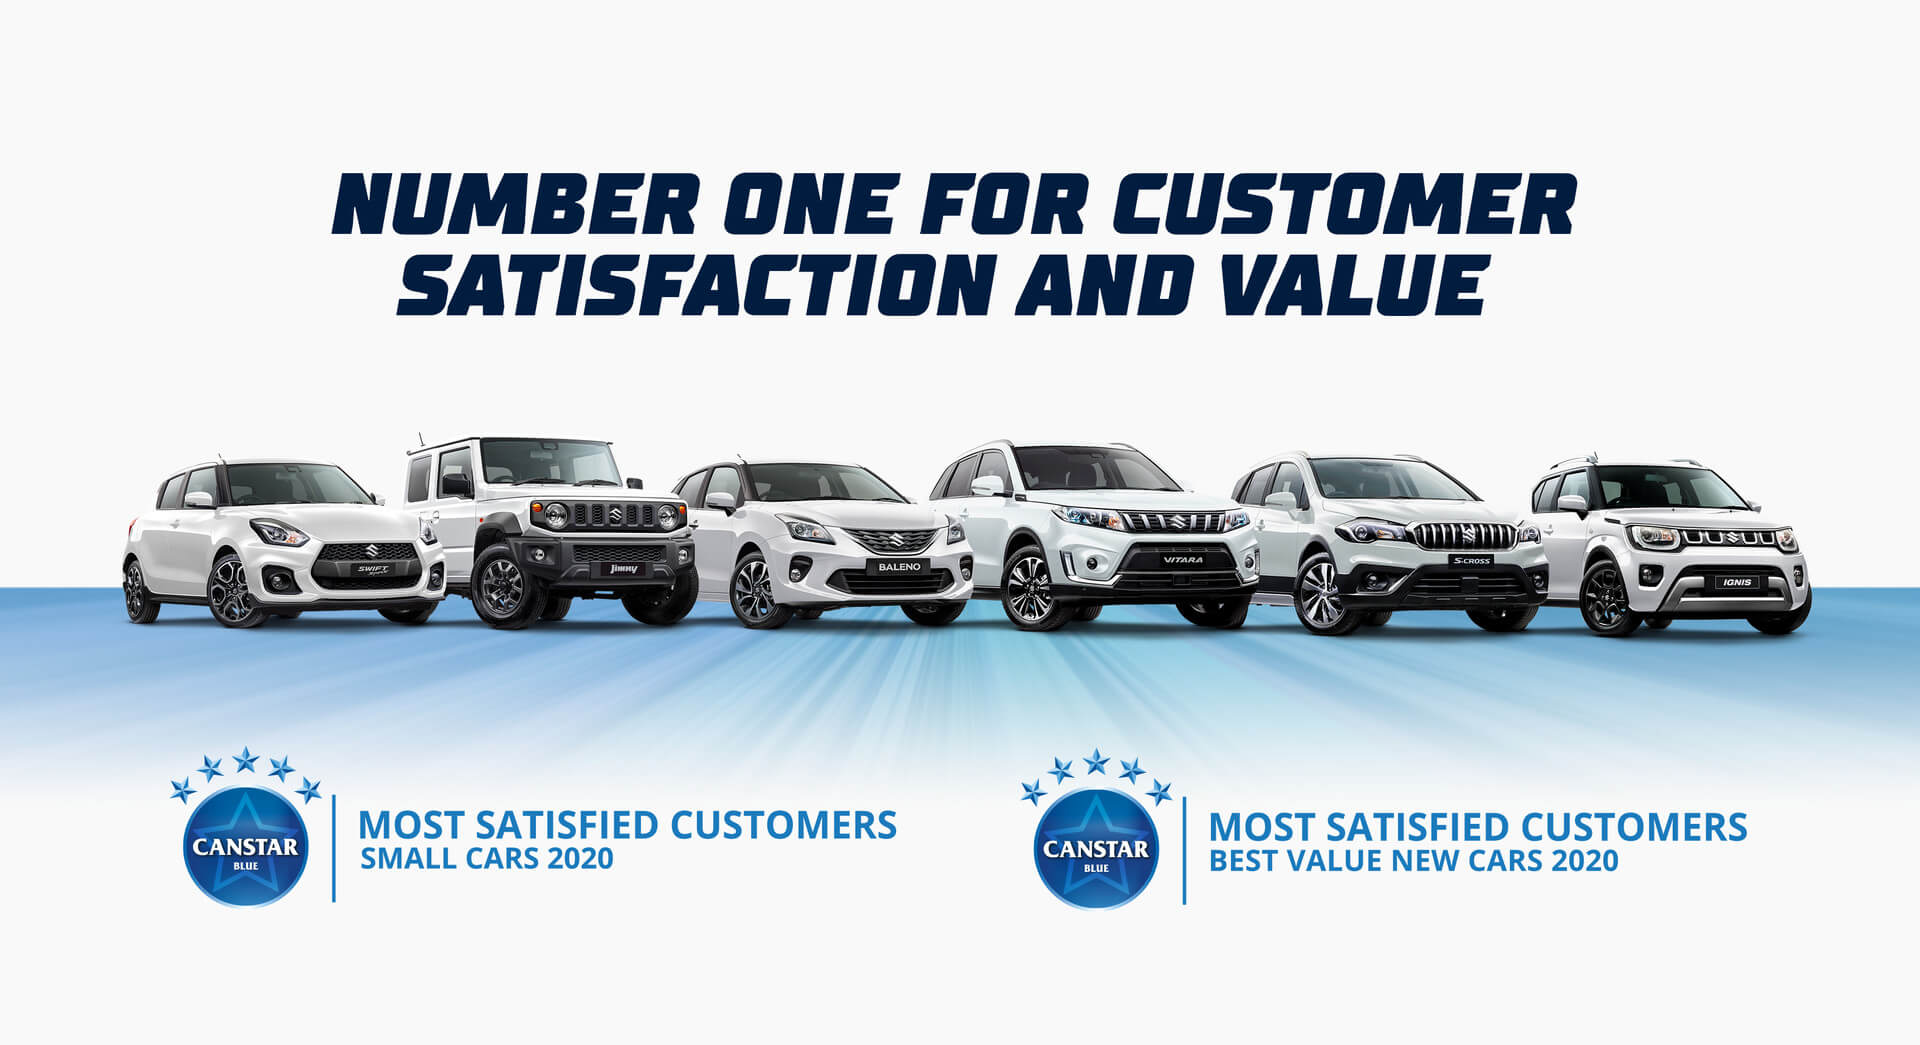 Number one for customer satisfaction and value